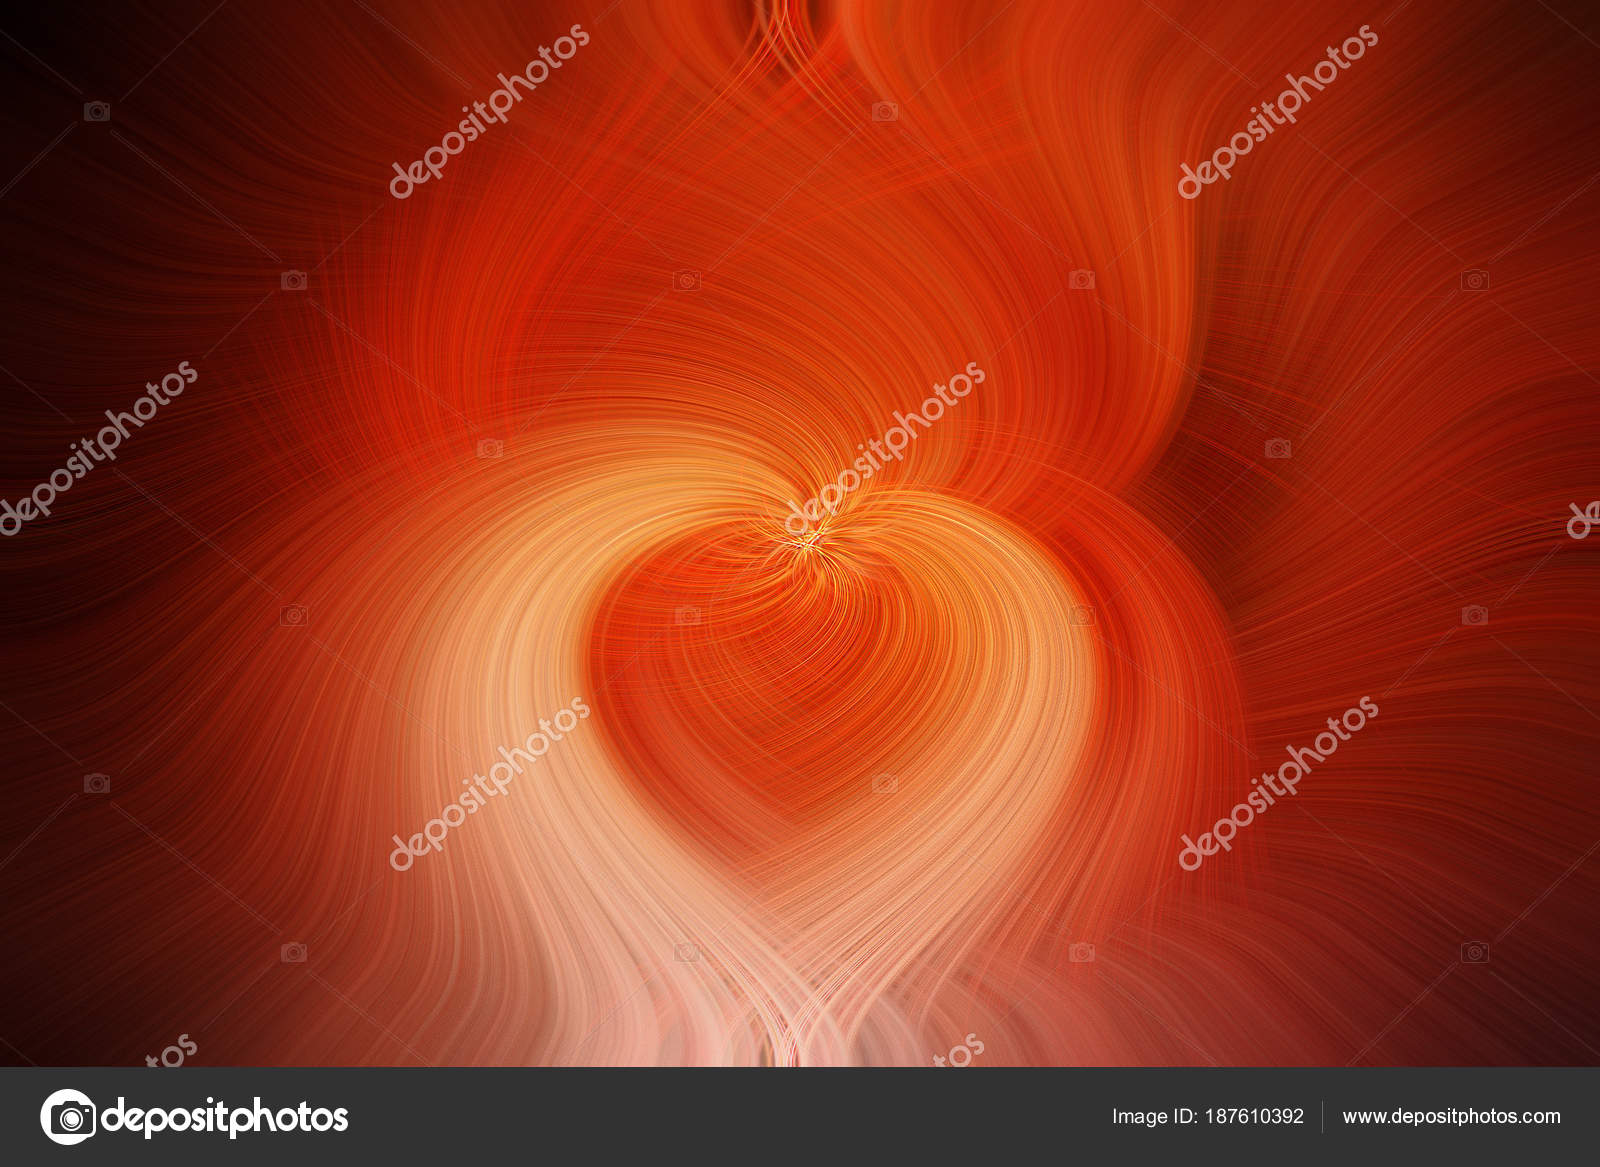 Swirl shapes photoshop | Abstract fine art photoshop swirl